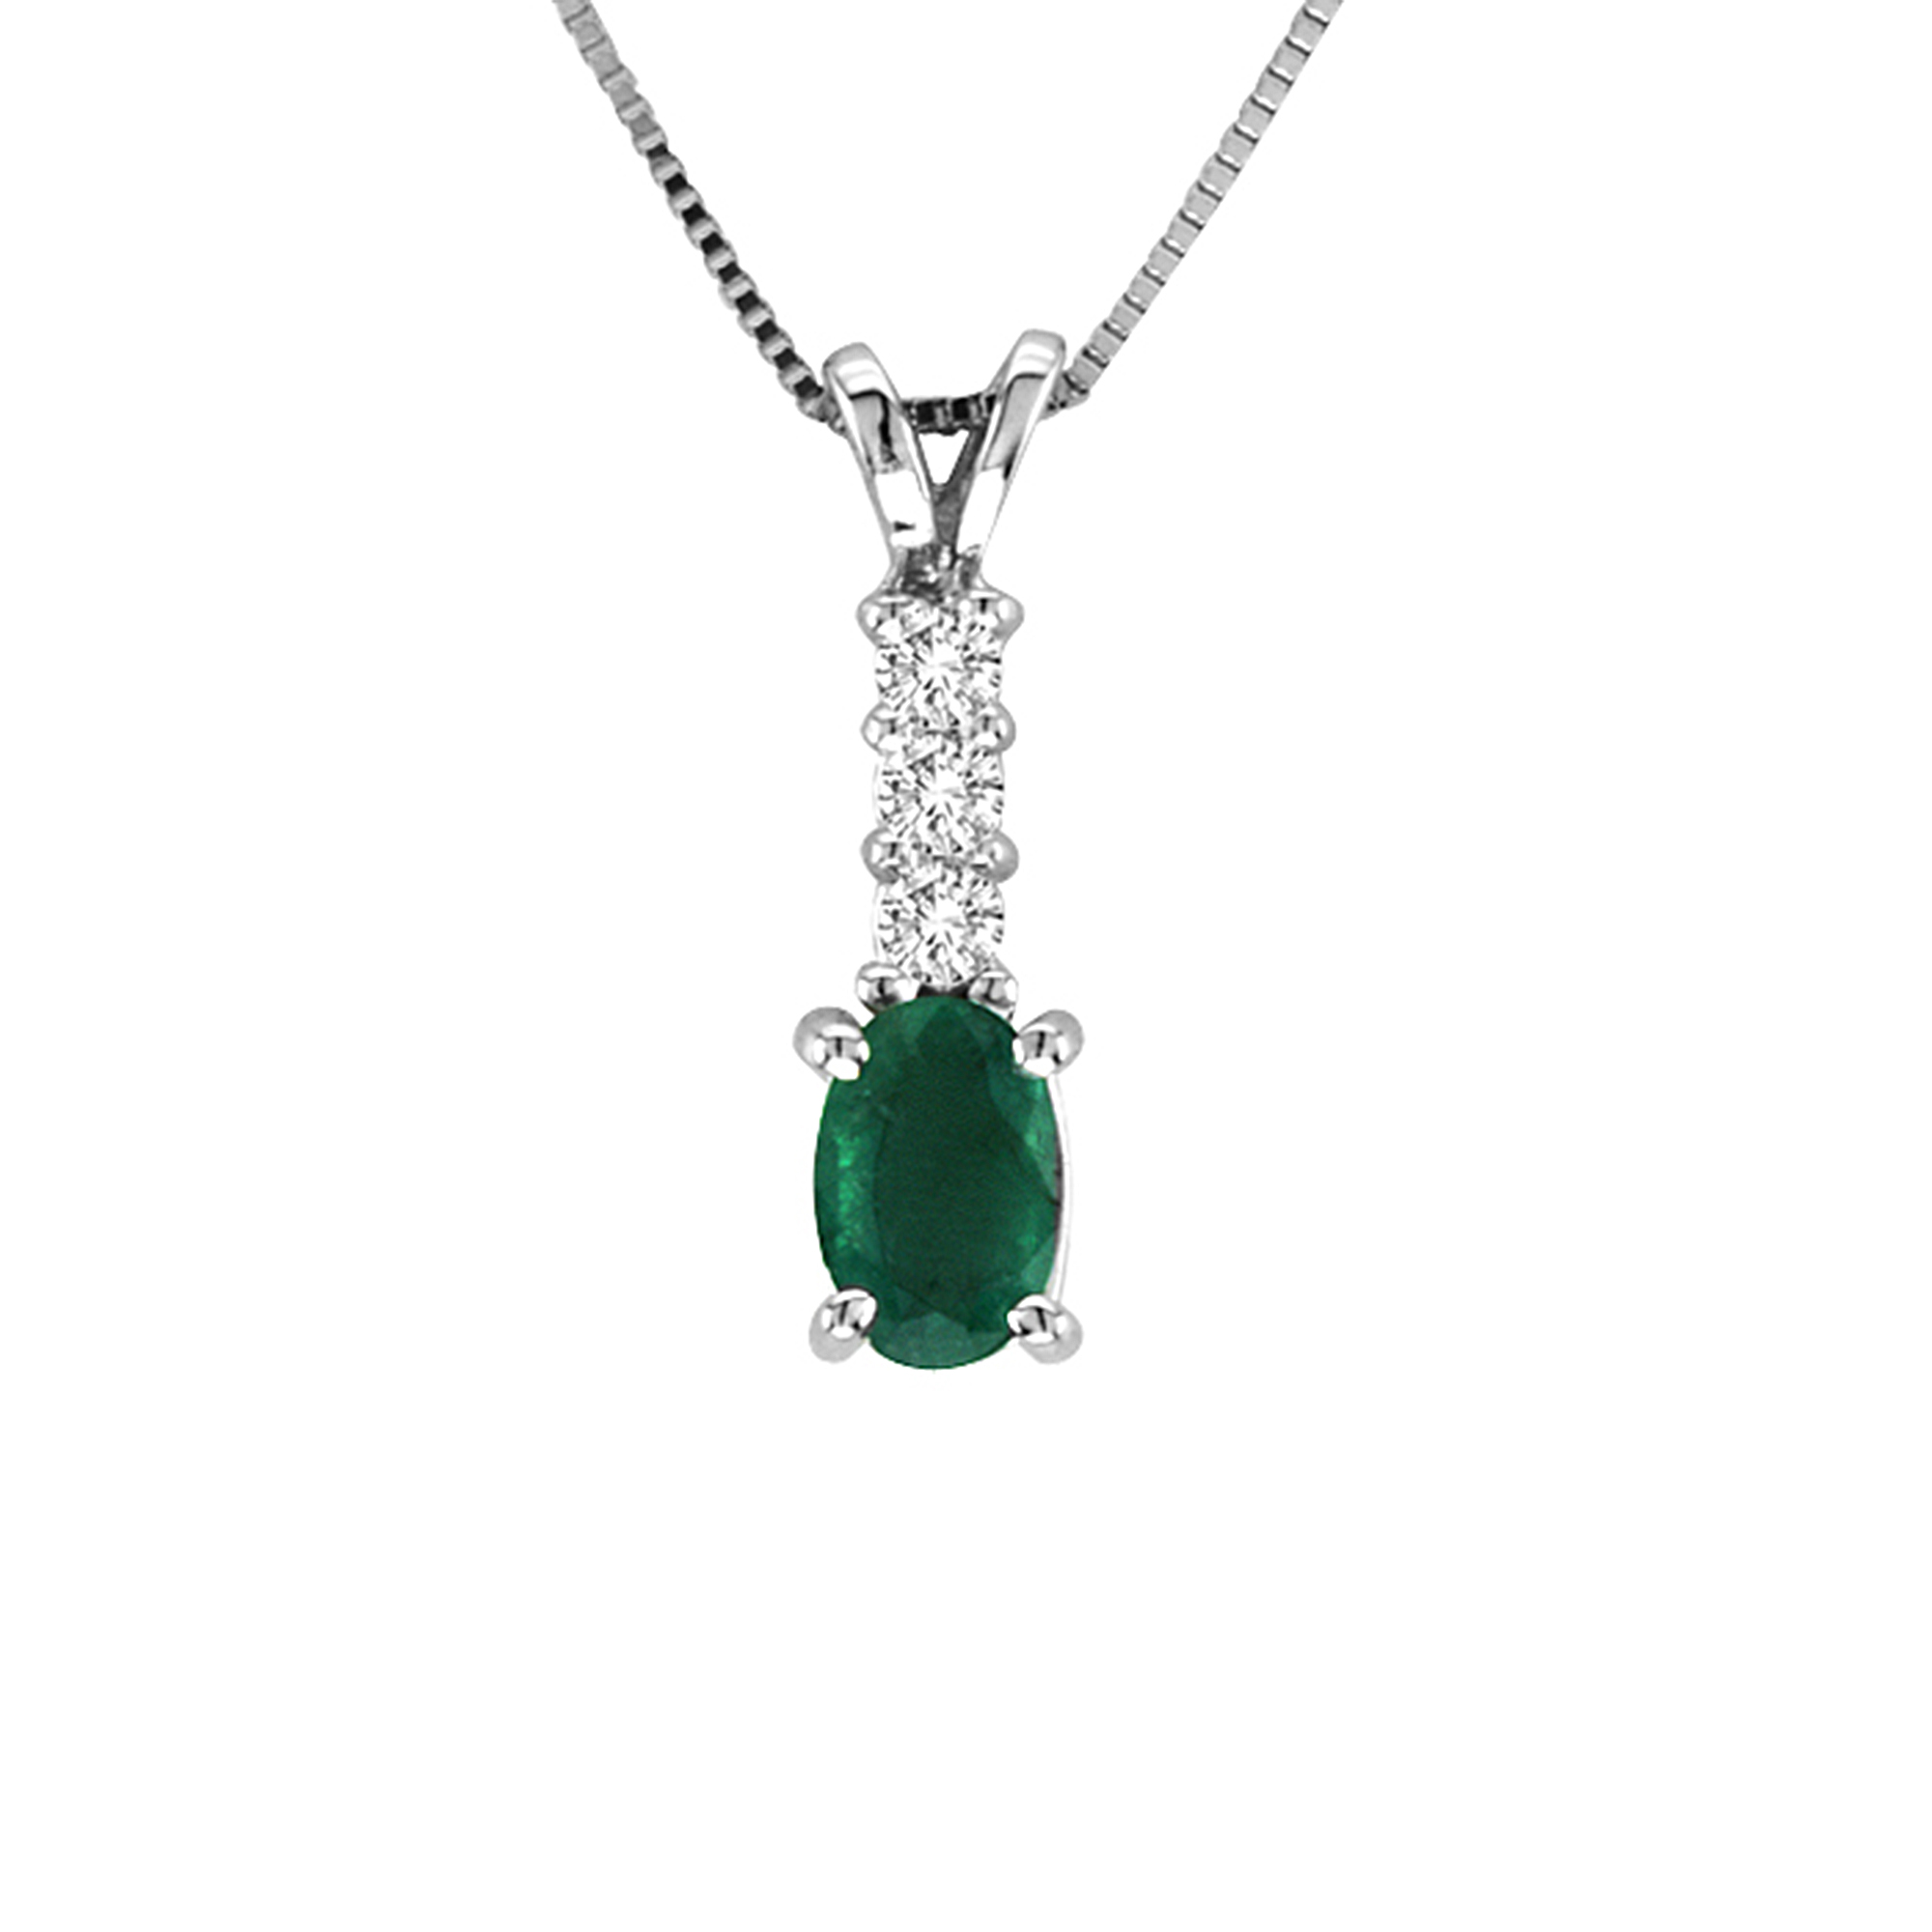 View 0.64cttw Emerald and Diamond Pendant in in 14k Gold